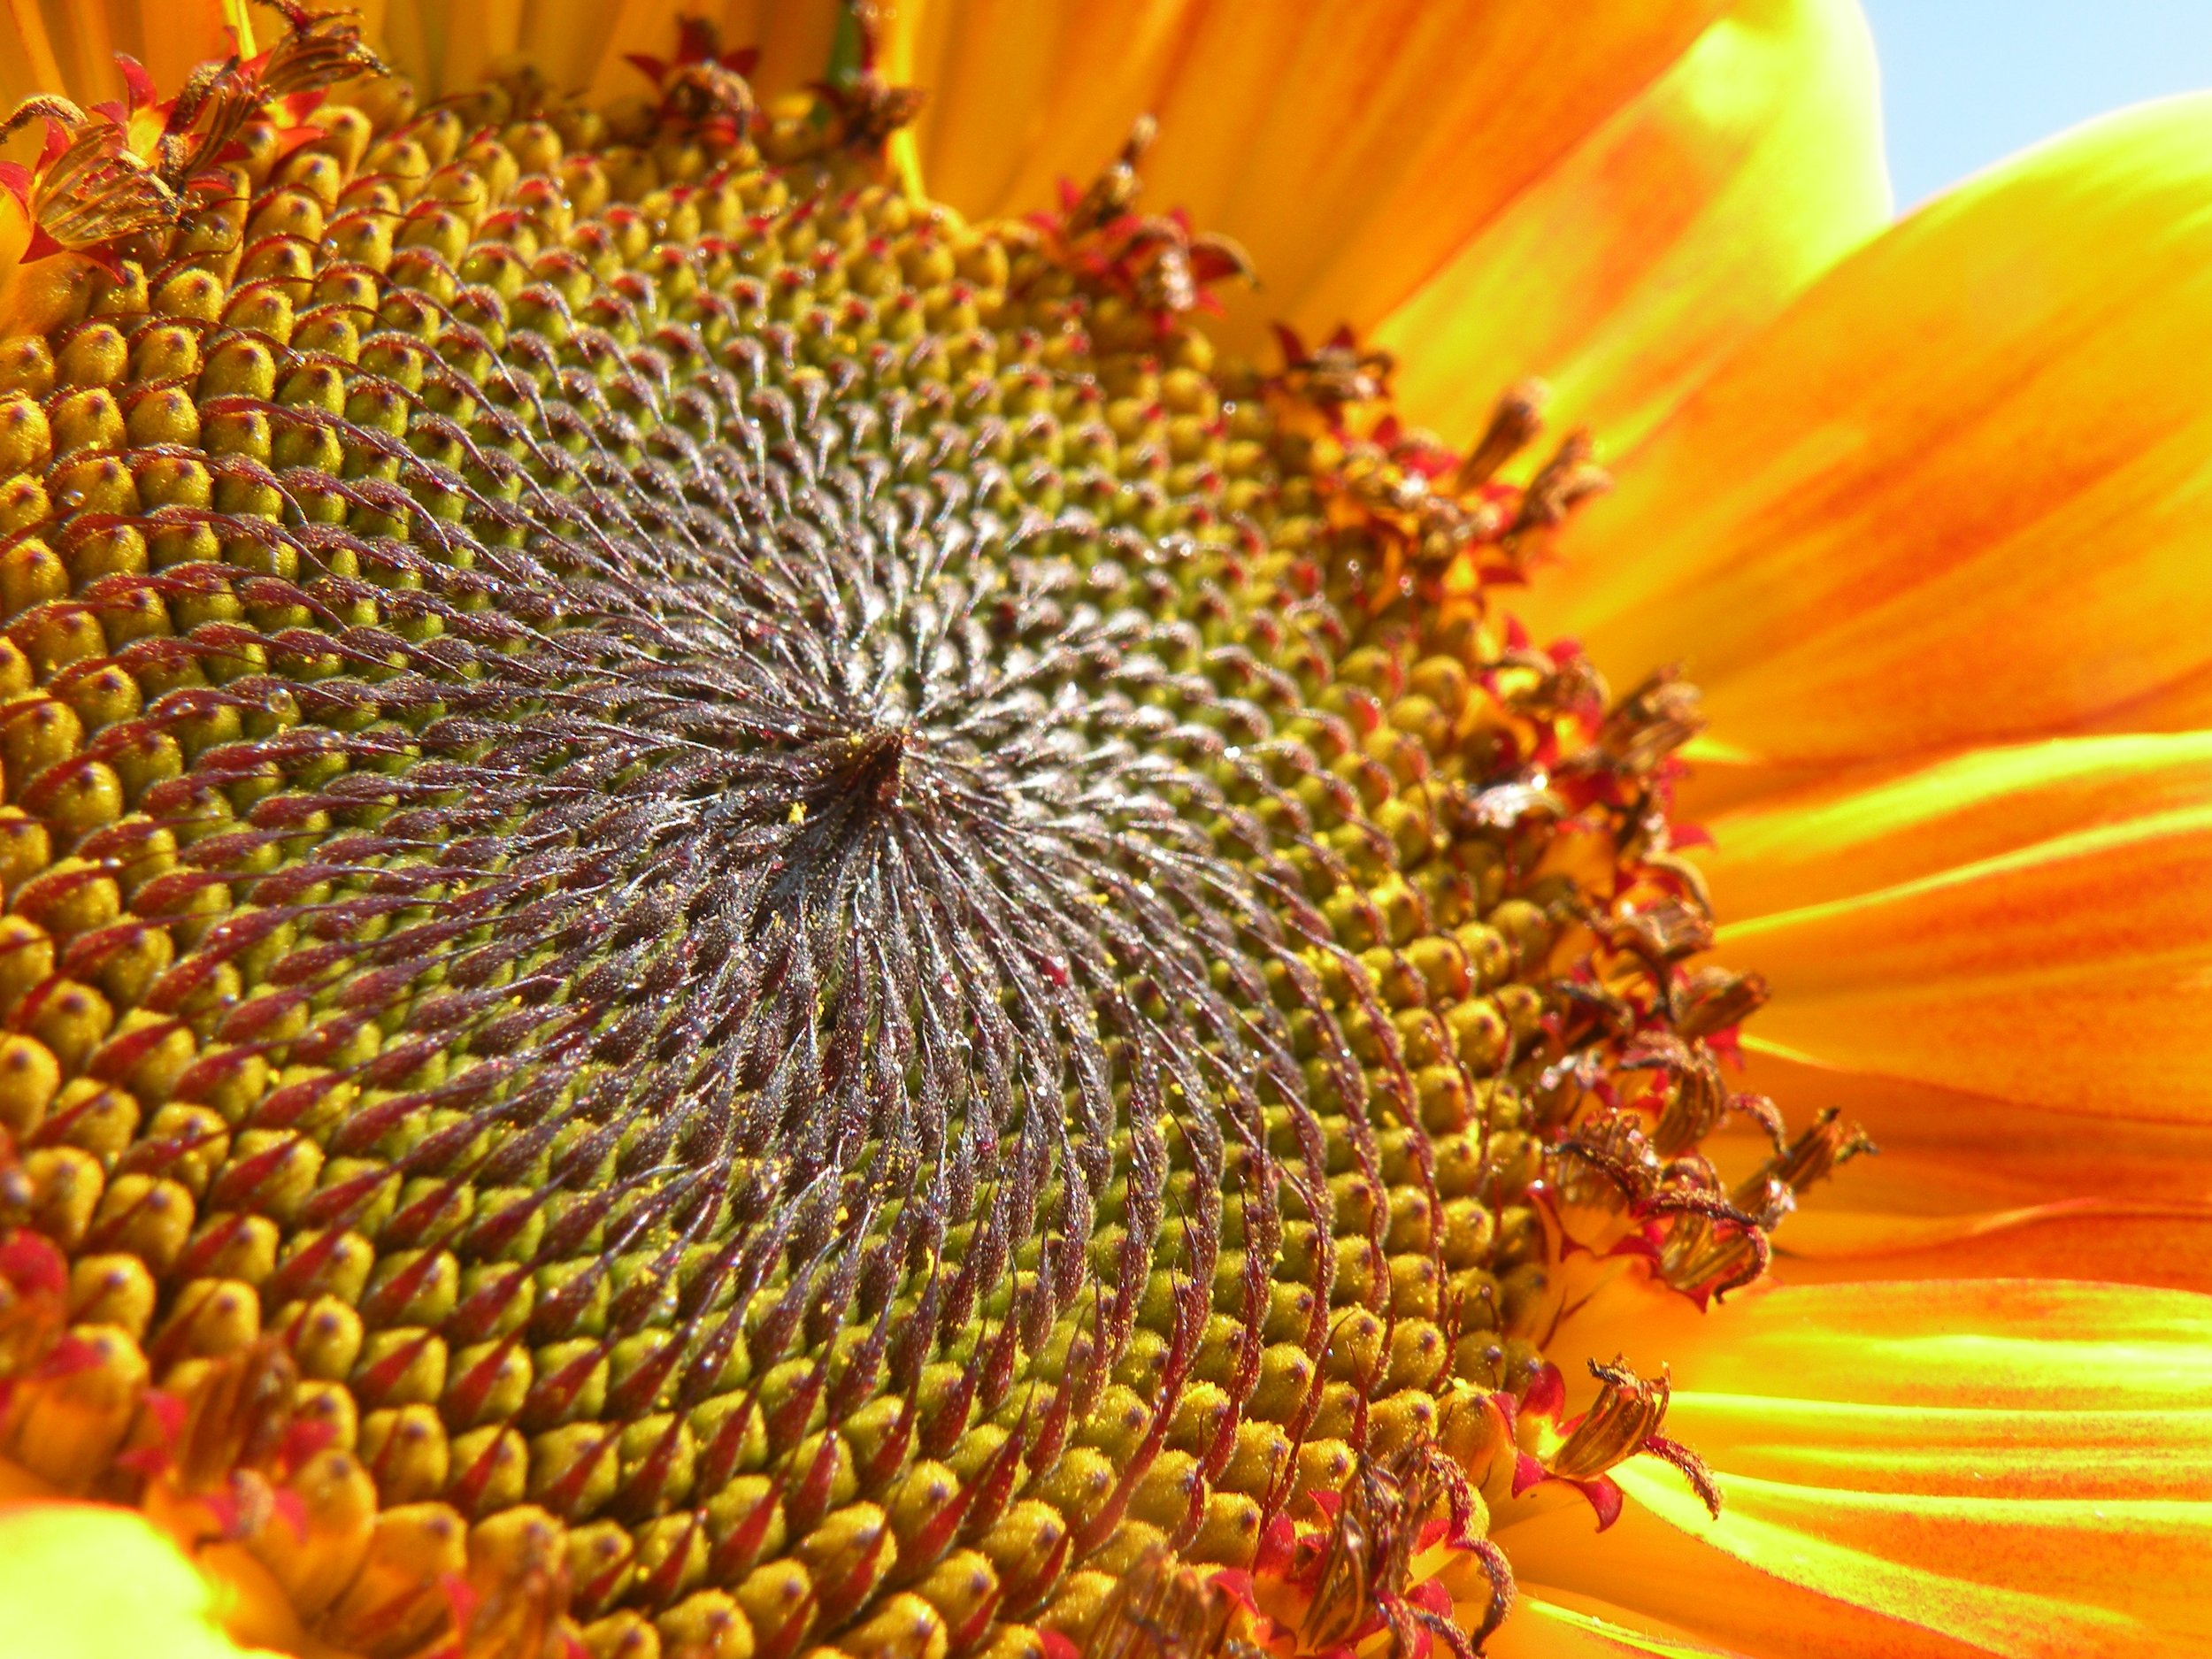 Fibonocci sequence abounds in sunflower seedheads. Photo by Rob McClure